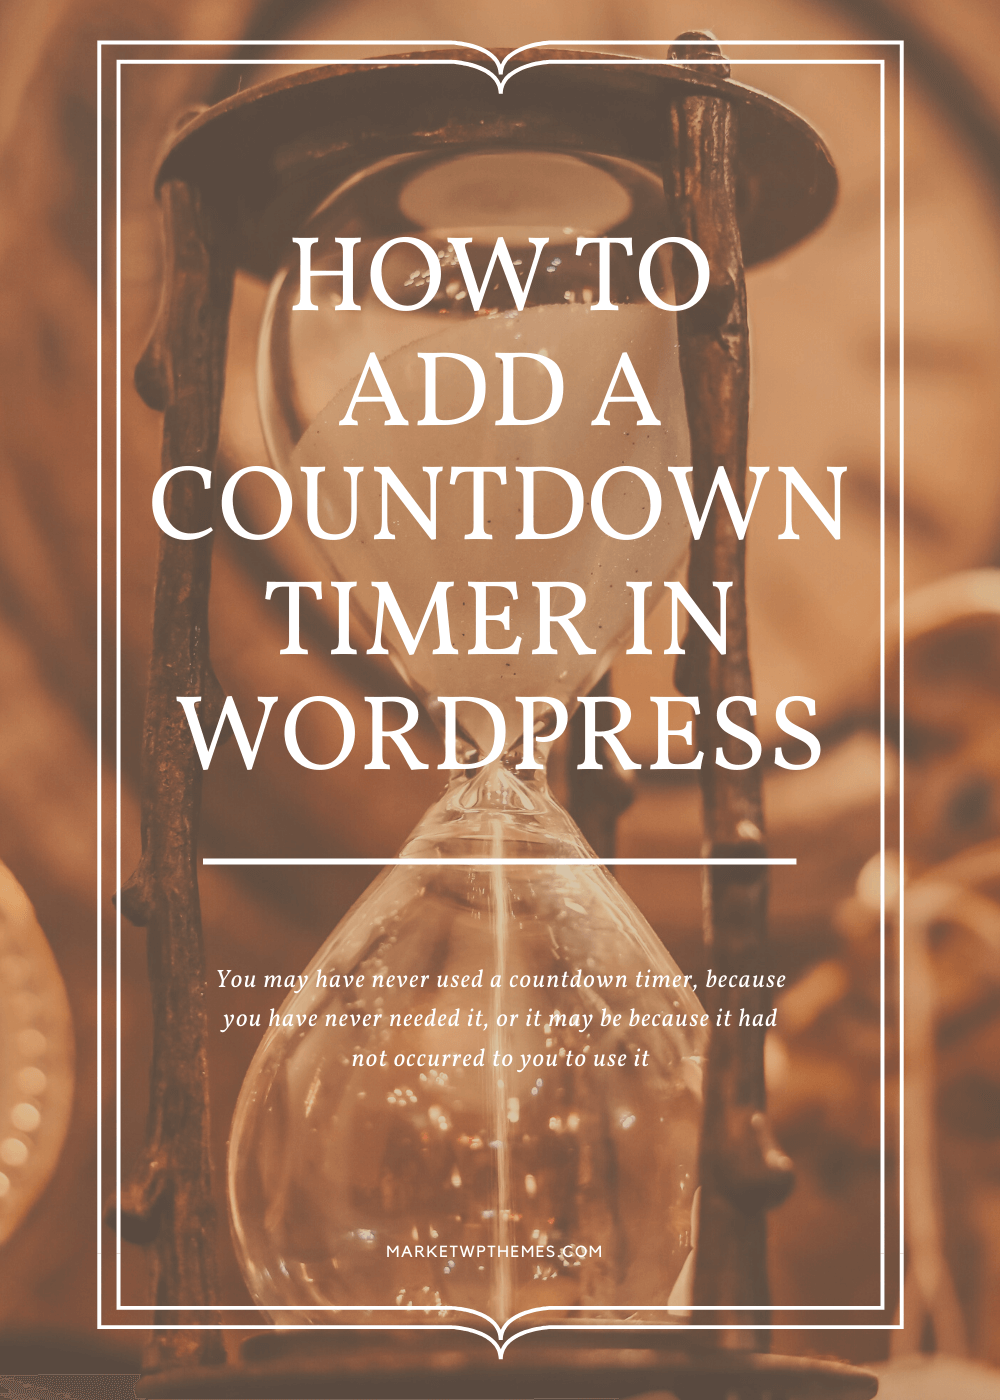 How To Add A Countdown Timer In WordPress